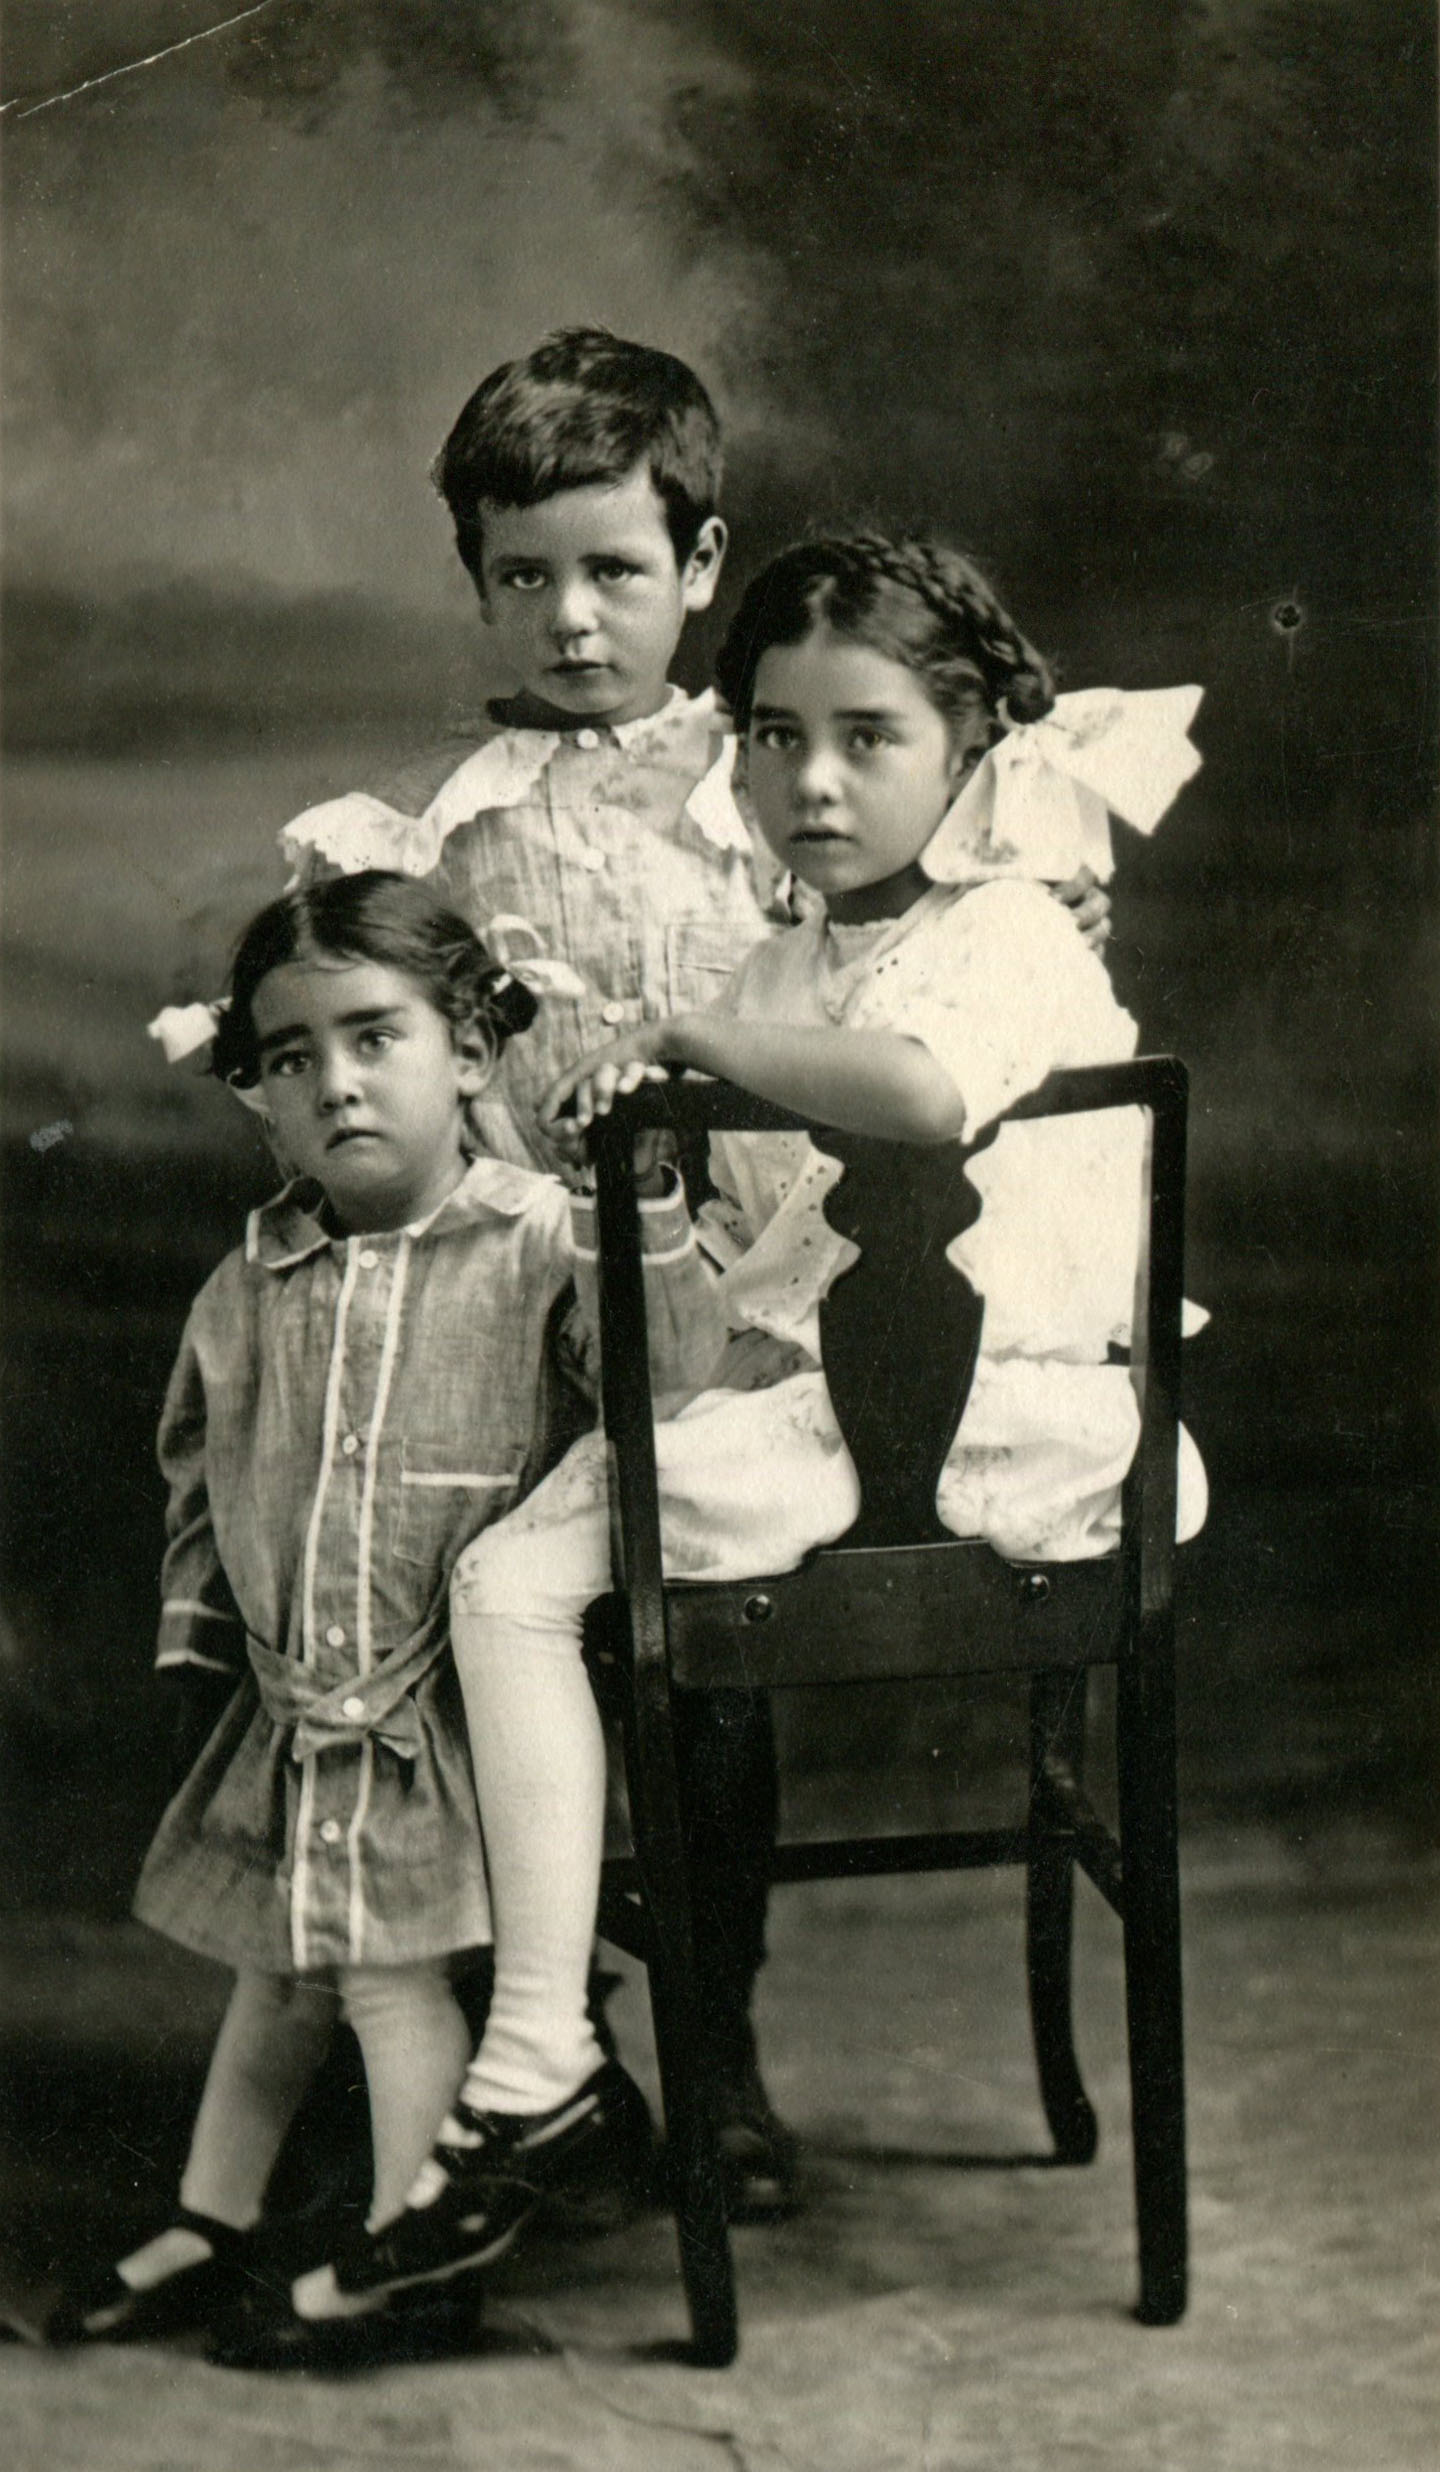 The writing on the back of this photograph reads: Sara, Fred and Salvador Andrade 1912. My grandfather was dressed as a girl?! . . . not quite sure why this happened . . . sometimes unearthing images from the past exposes more questions than answers, regardless, visual proof is most impactful and somehow more resilient over anything passed down through story or word of mouth.